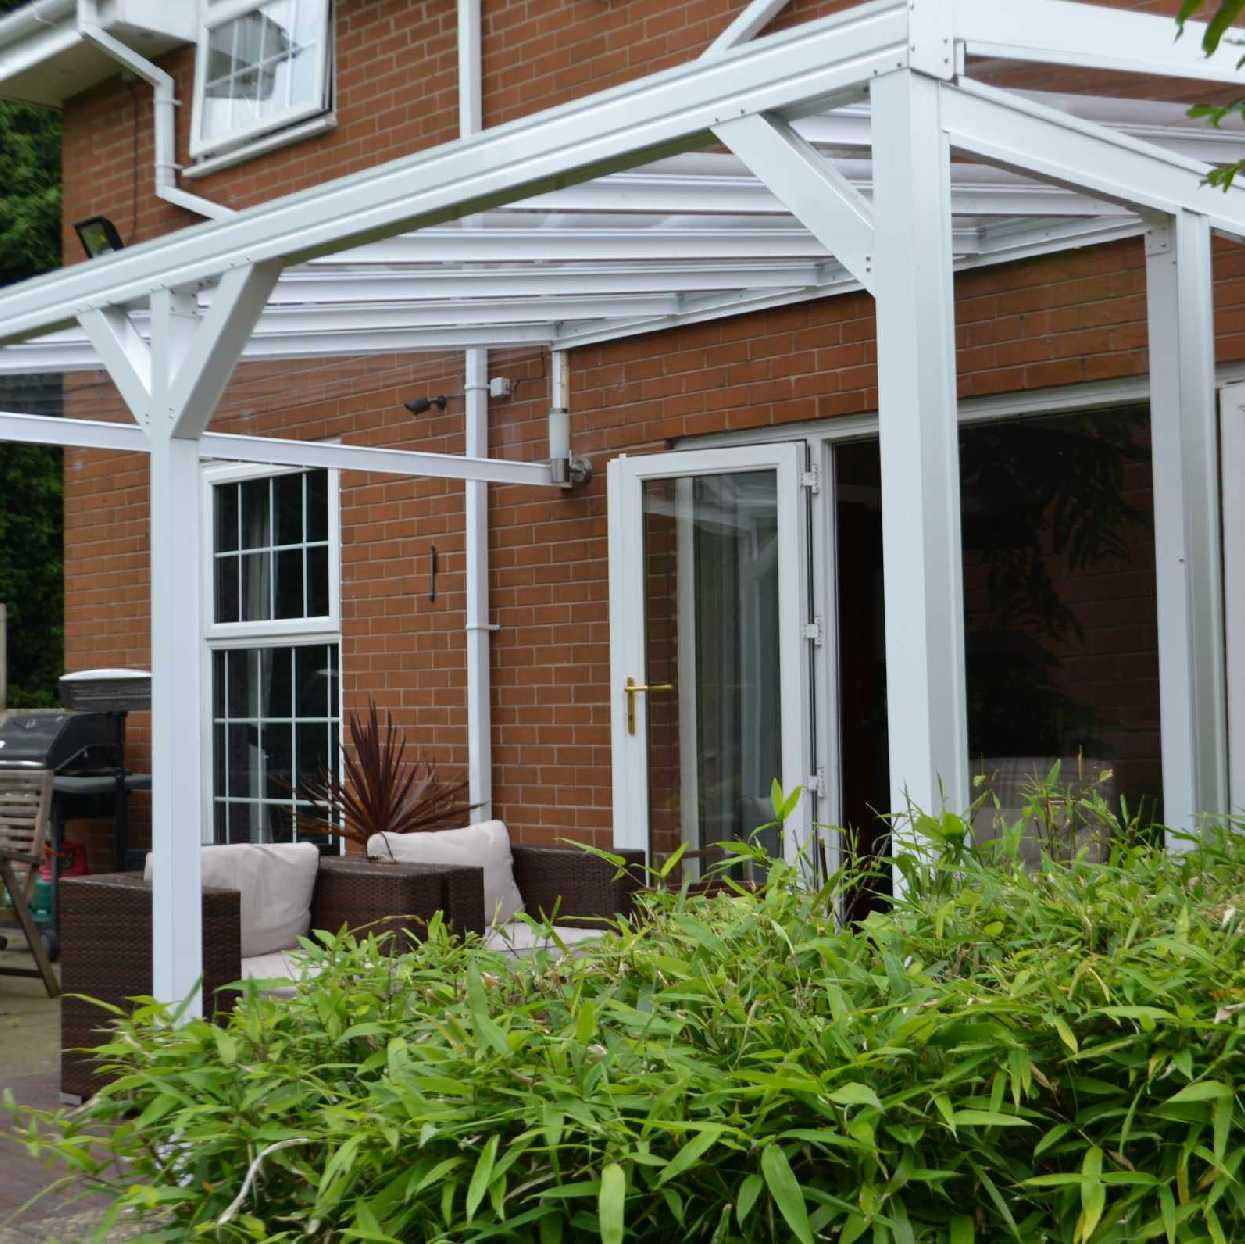 Omega Smart Lean-To Canopy UNGLAZED for 6mm Glazing - 7.0m (W) x 3.0m (P), (4) Supporting Posts from Omega Build